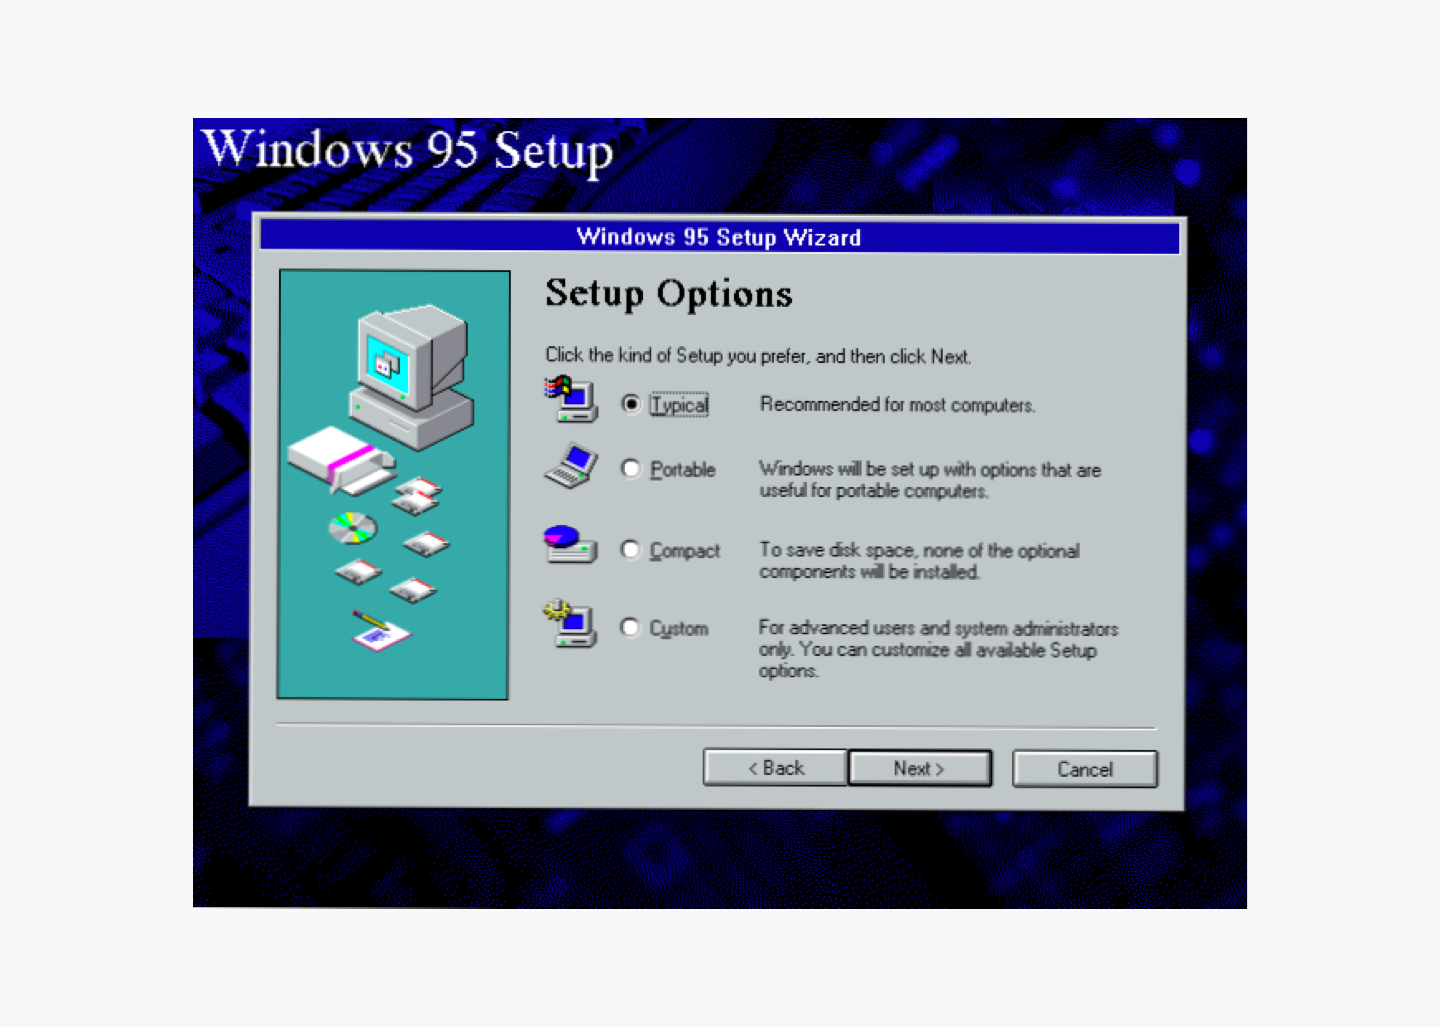 Windows 95 light and shadow image